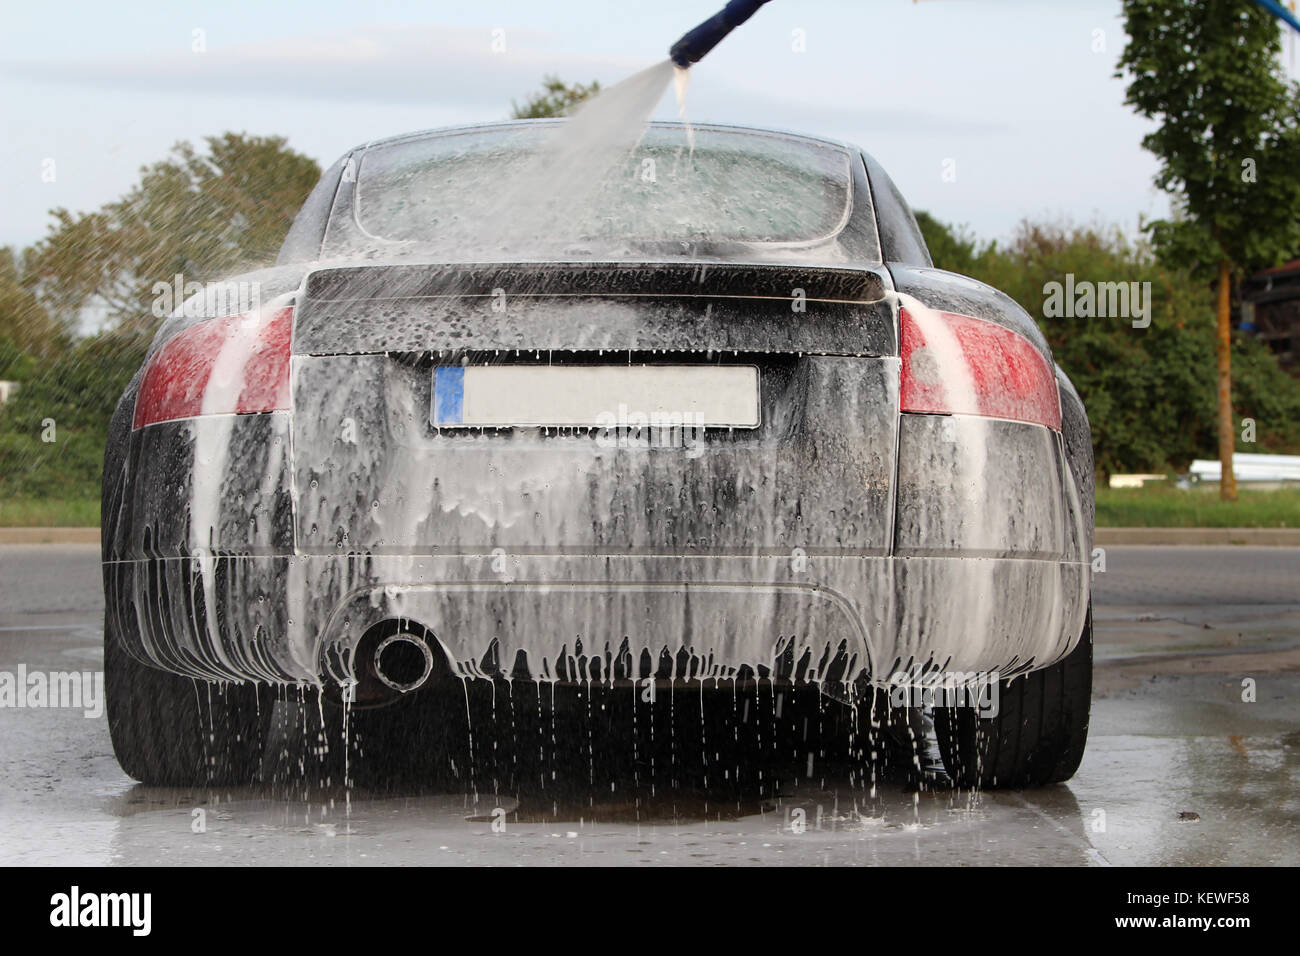 Car detailing : Car Washing with Foam Shampoo. Stock Photo